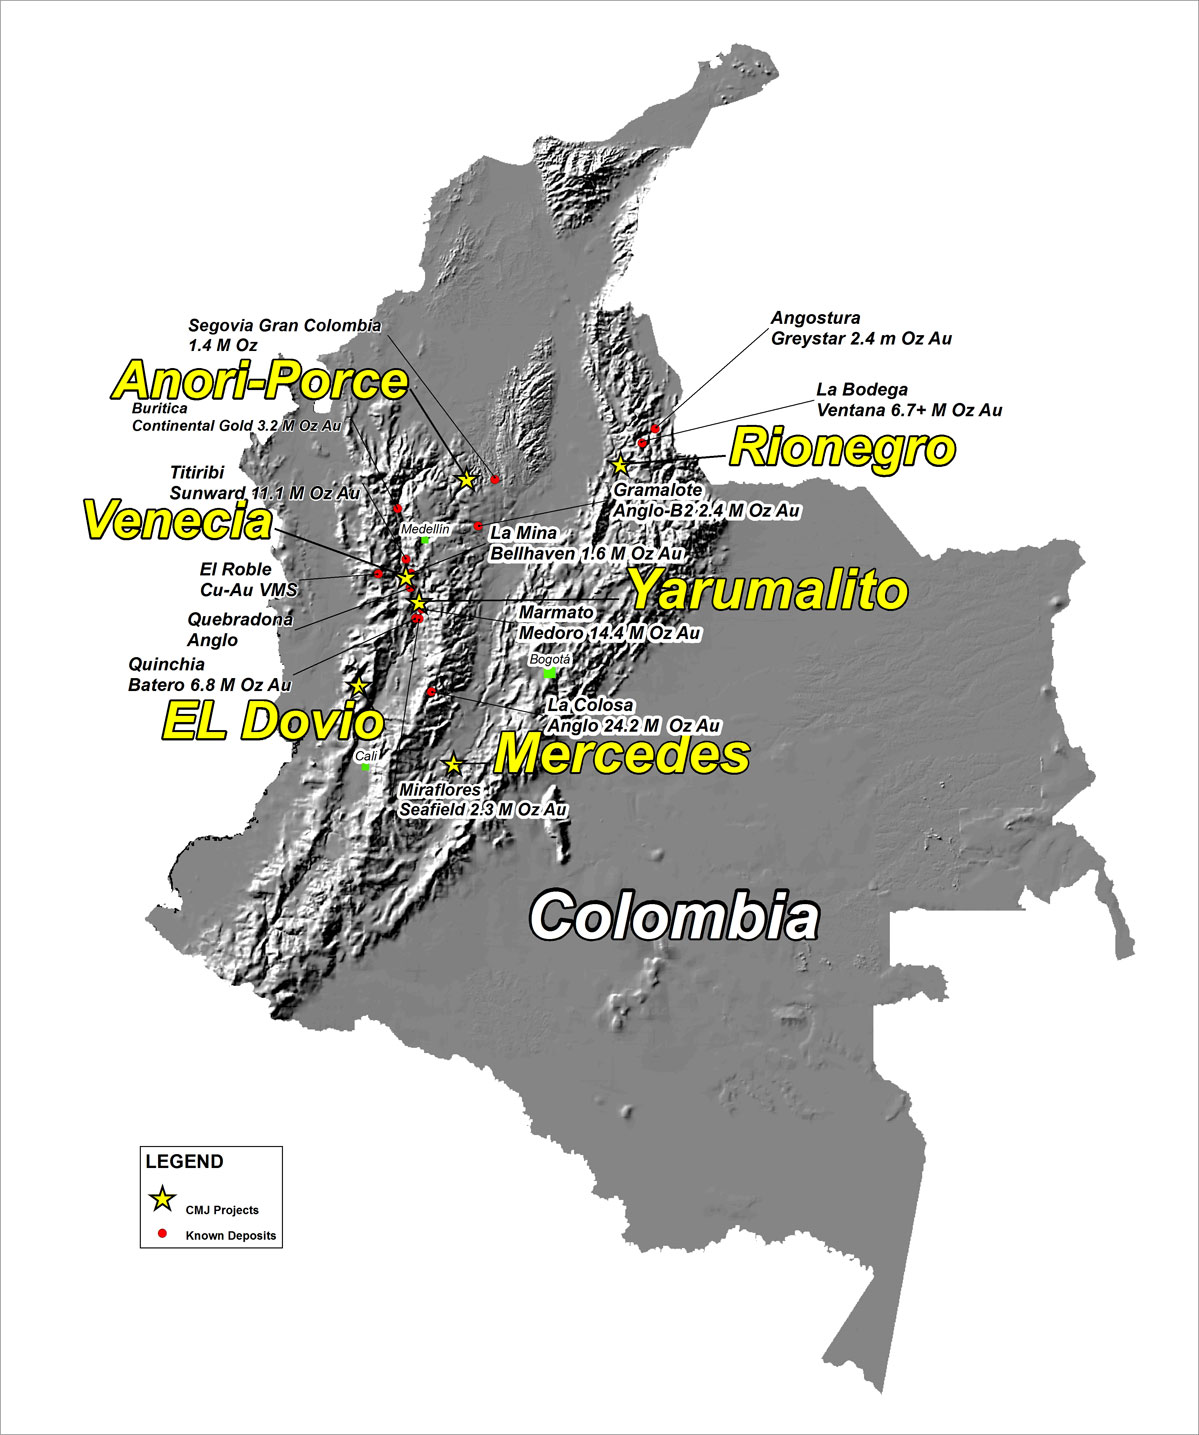 american mining in colombia essay The agriculture and extractive industries (the mining industry in chile and banana production in colombia) csr practices in uruguay and new legal instruments in the area of human rights and labour rights in the latin american region.